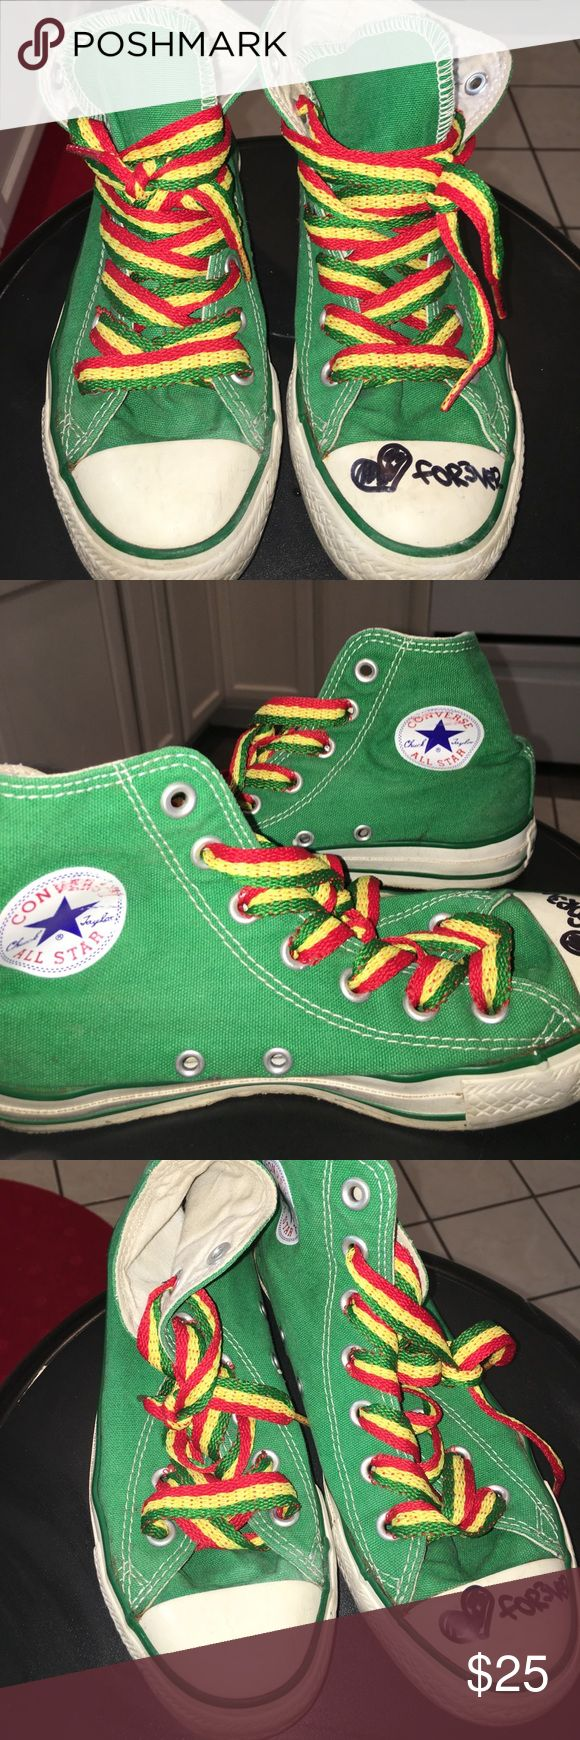 ❤️ RASTA GREEN HIGH TOP CONVERSE CHUCKS  ❤️ high top green converse • all star• chuck taylors • true green • thick Rasta laces you can replace with whatever you like• used & I wrote on the left foot forever • cute and fun ! I love chucks ! KIDS SIZE 4 (women's size 6) Converse Shoes Sneakers